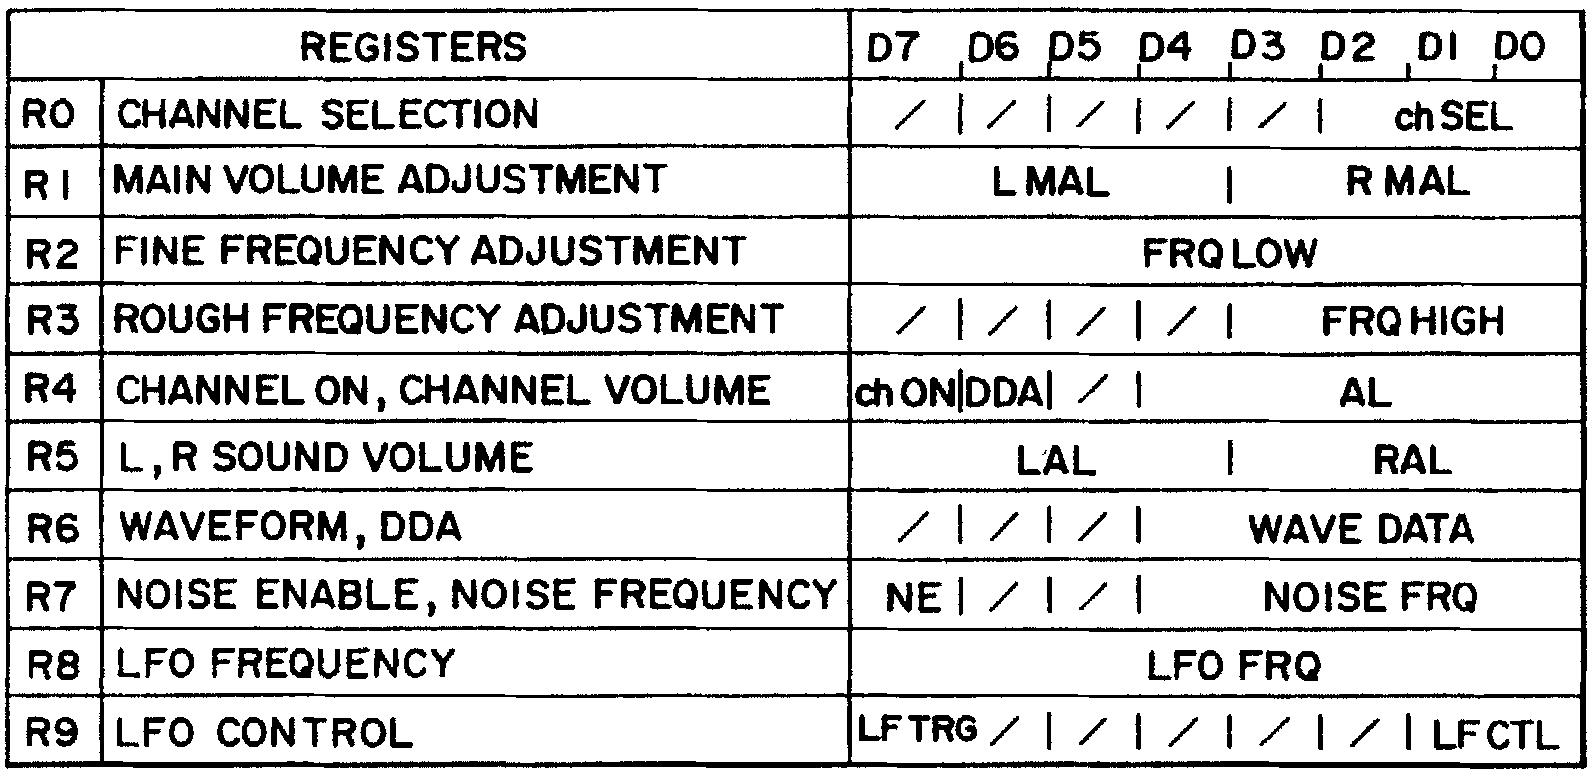 US4924744-fig2.png